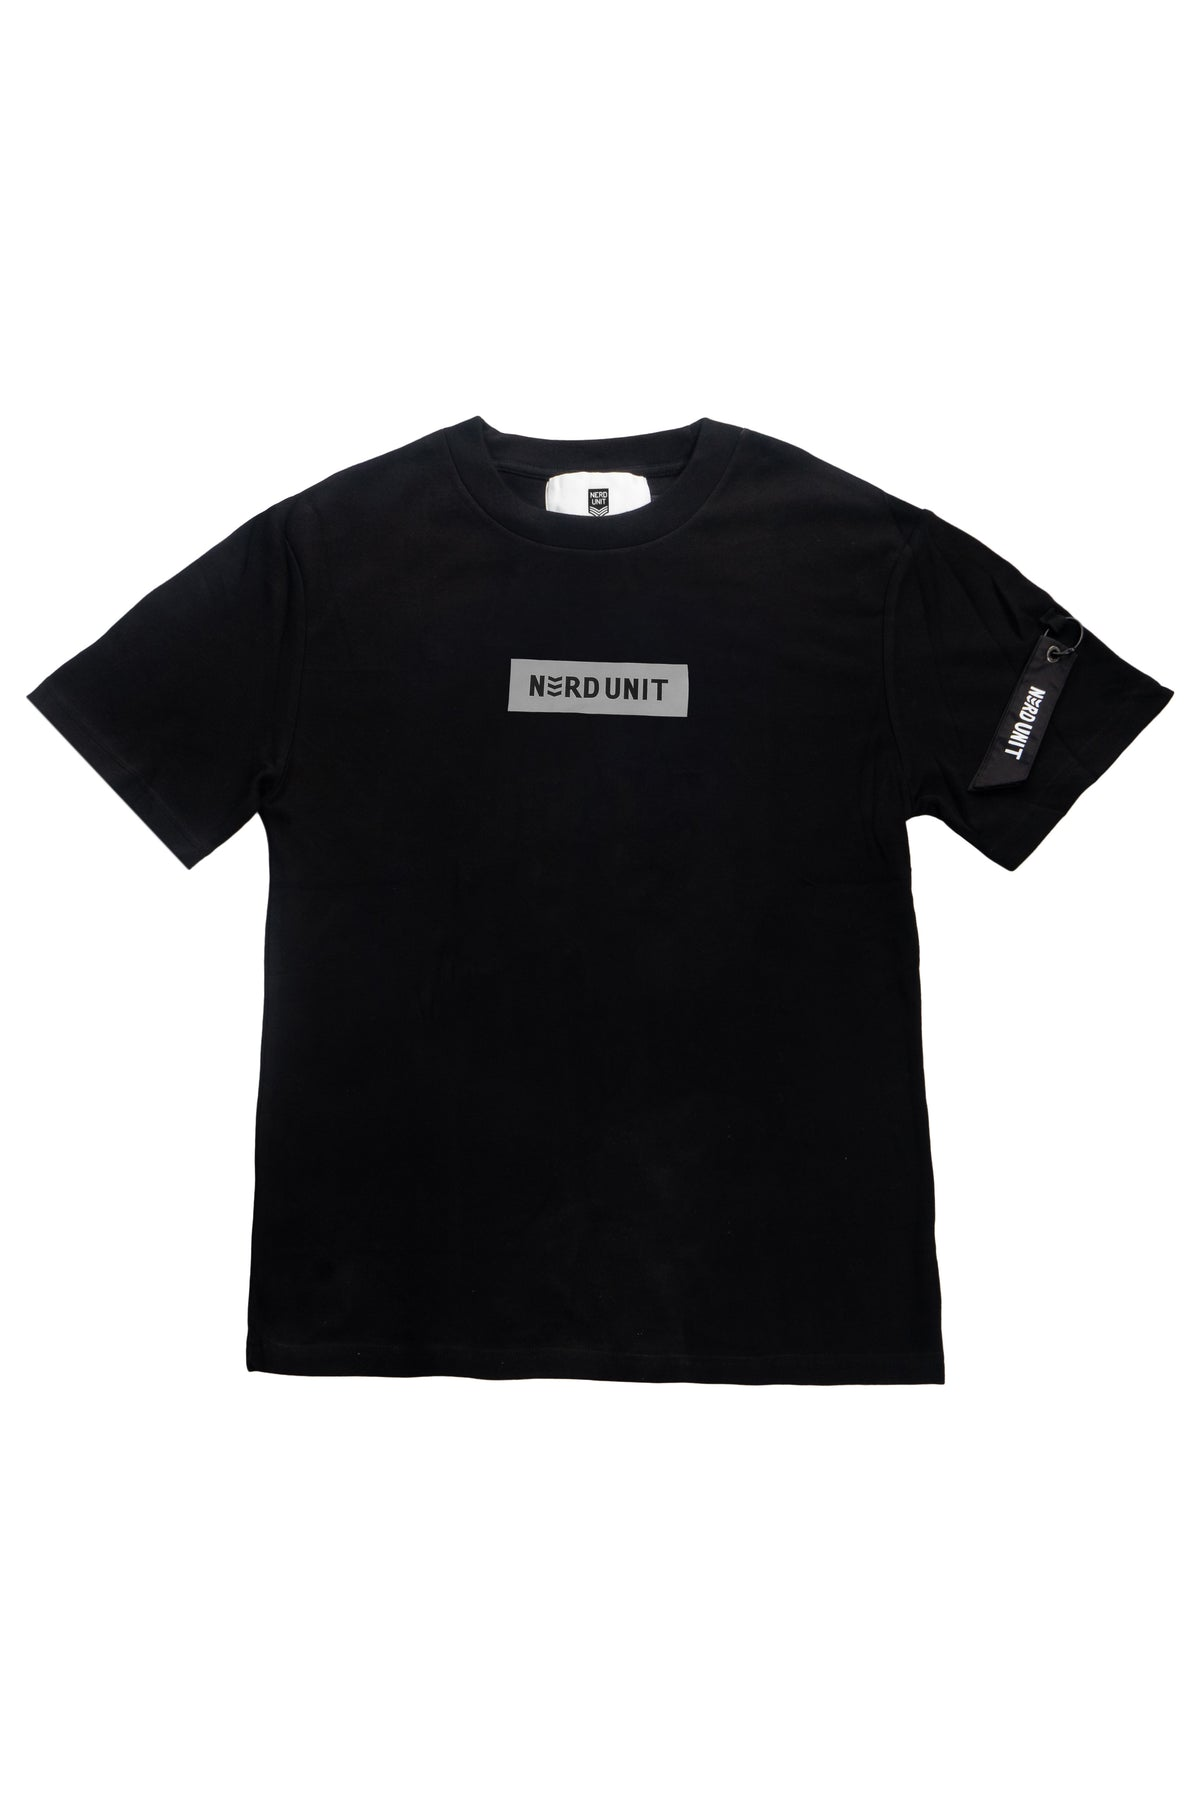 REFLECTIVE BOX LOGO TEE